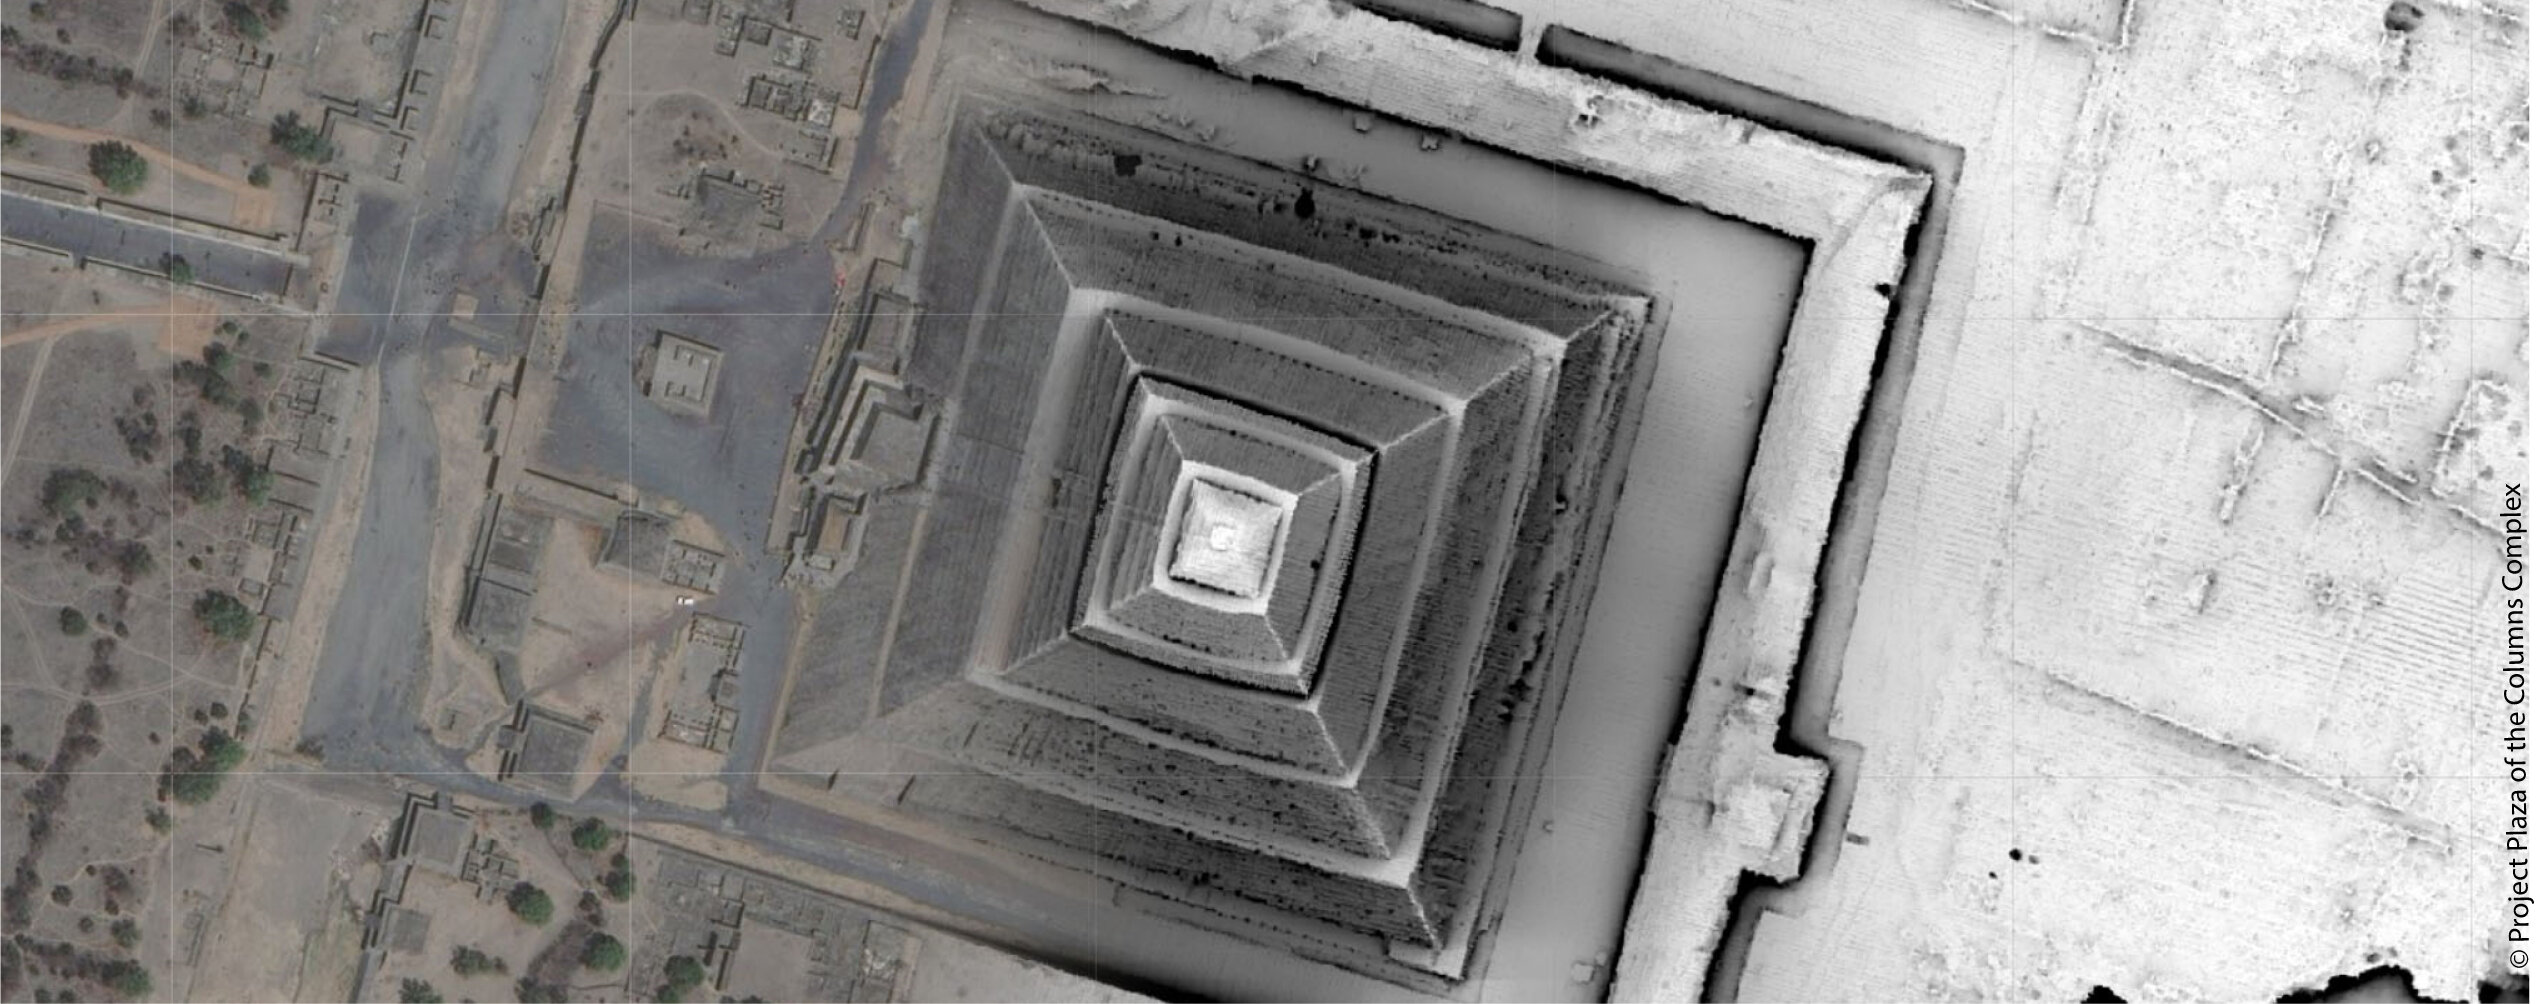 Modern activities follow the contours of ancient Teotihuacan - Phys.org